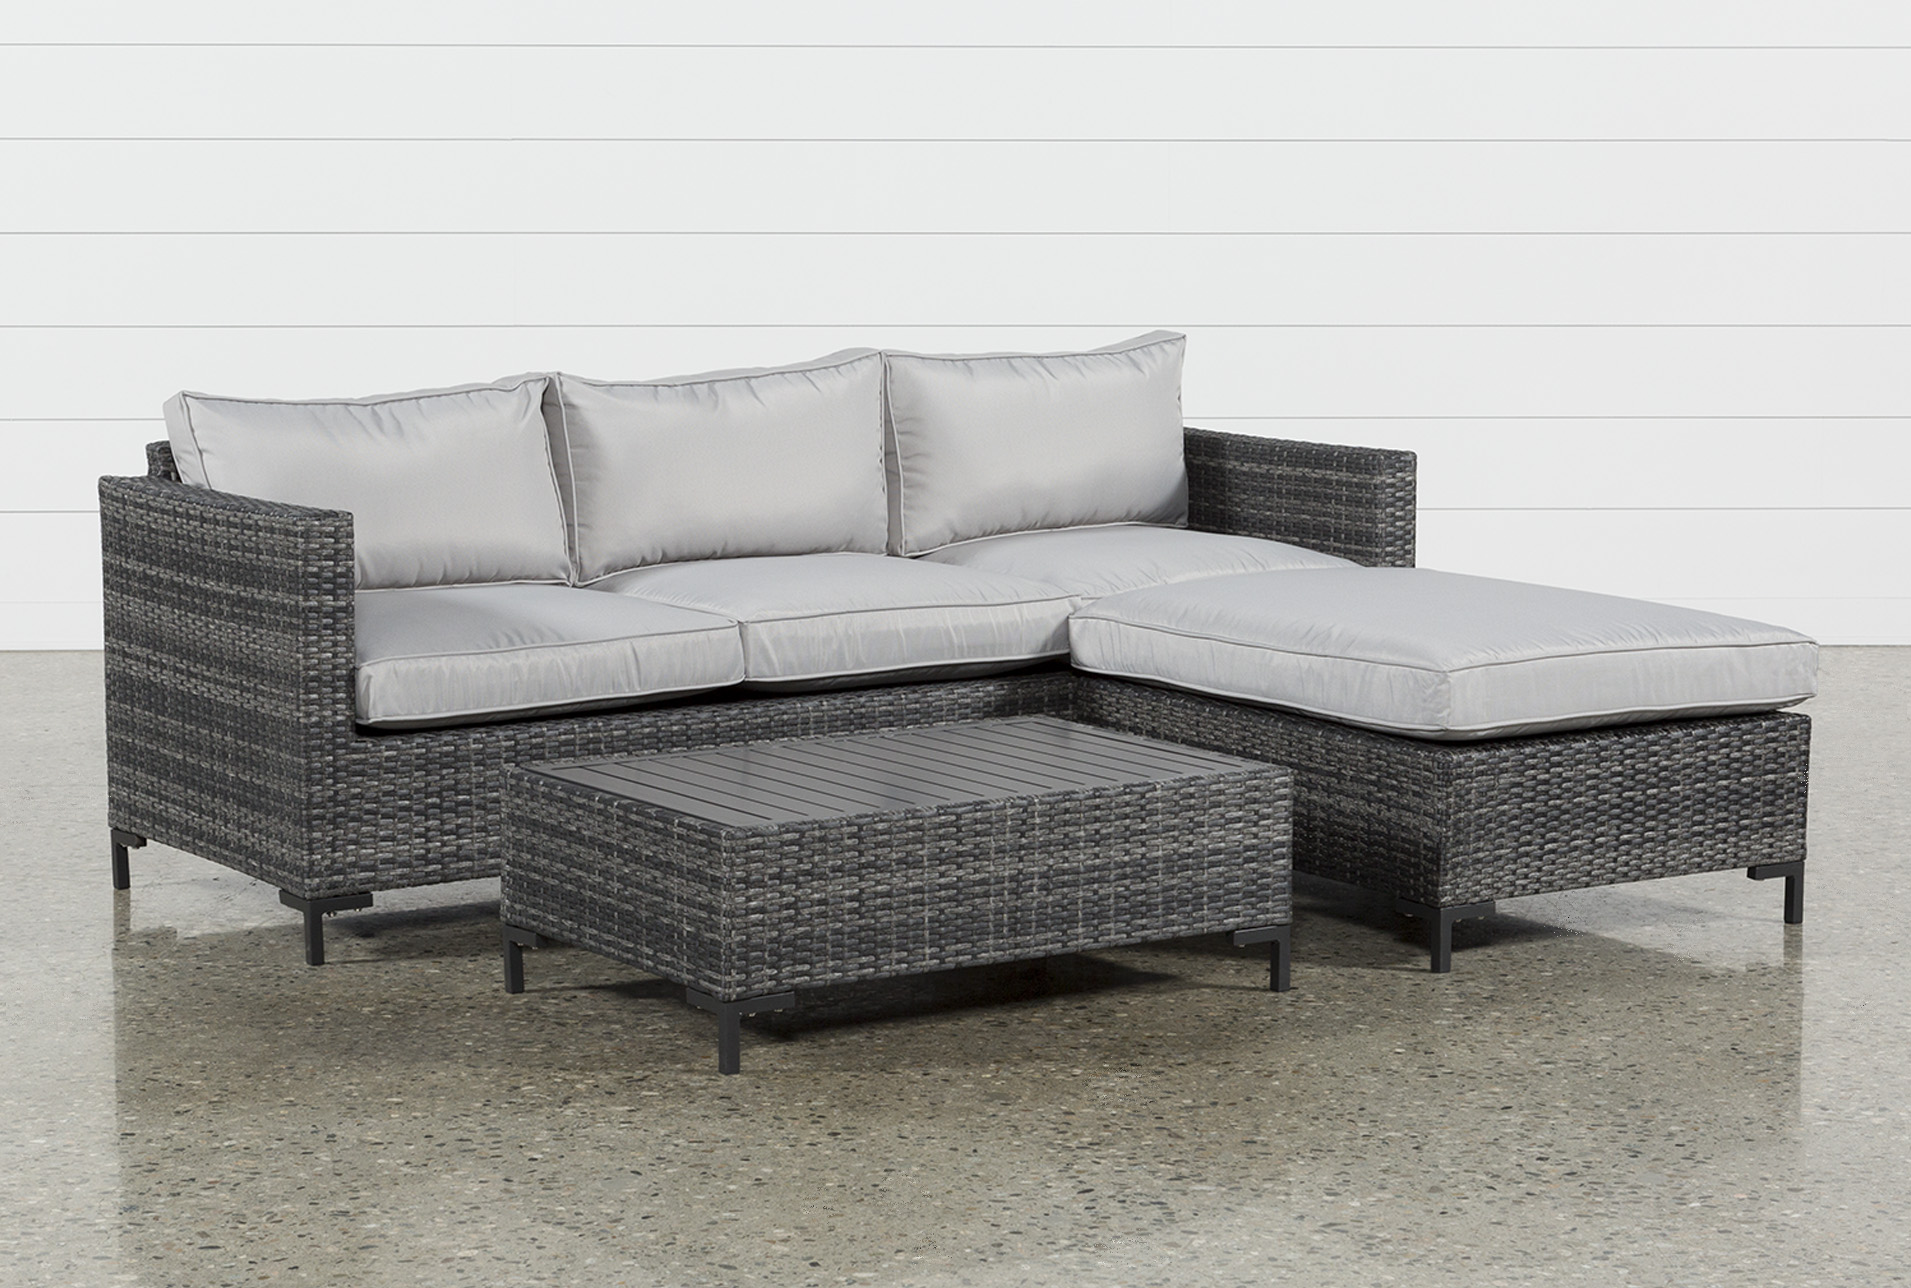 Outdoor Domingo II Sofa W/Reversible Chaise U0026amp; Cocktail Table (Qty: 1)  Has Been Successfully Added To Your Cart.